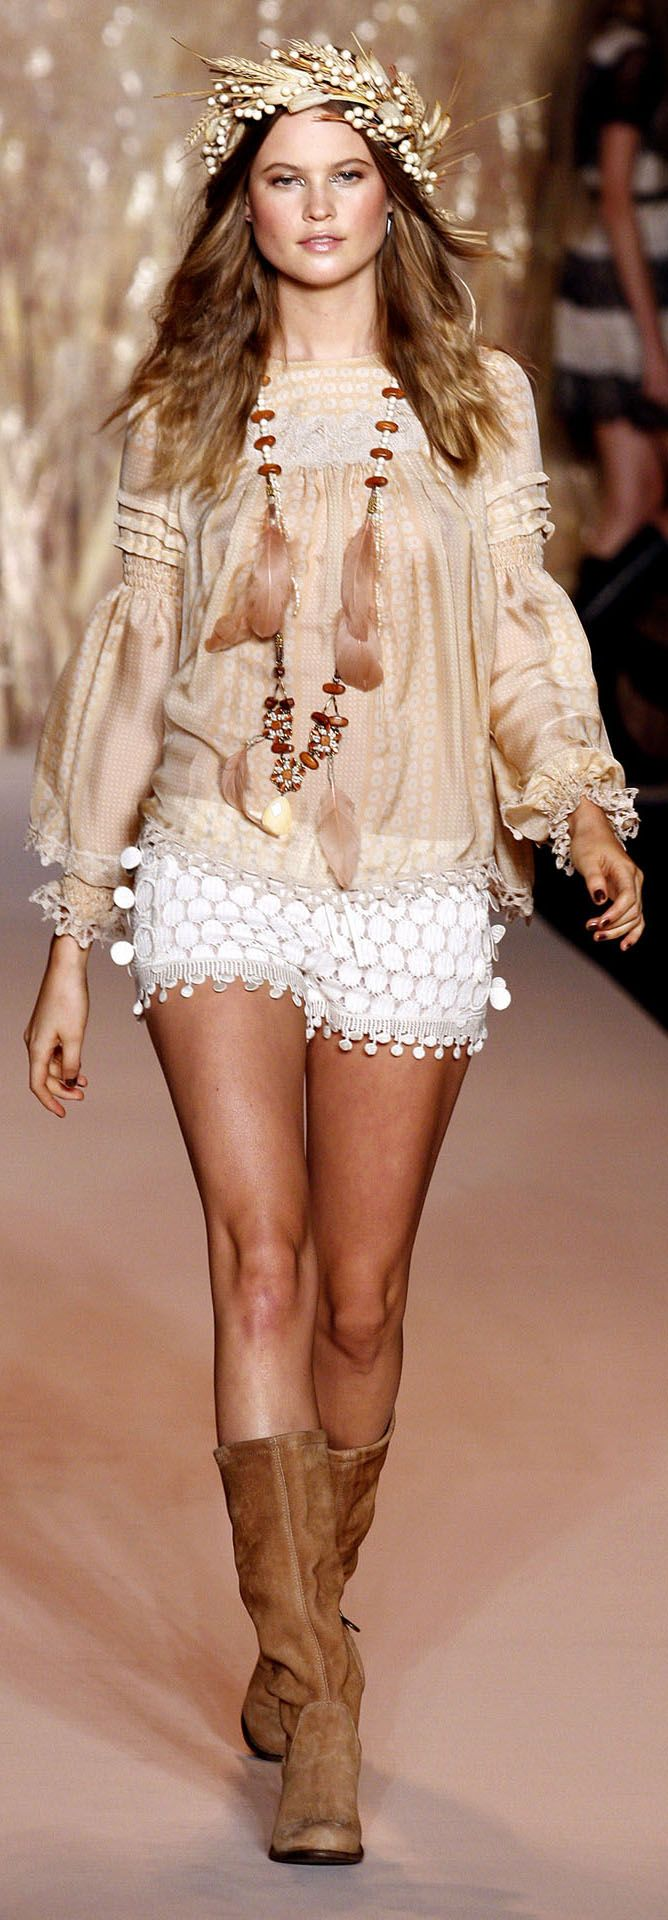 http://www.vogue.co.uk/fashion/spring-summer-2011/ready-to-wear/anna-sui/full-length-photos#